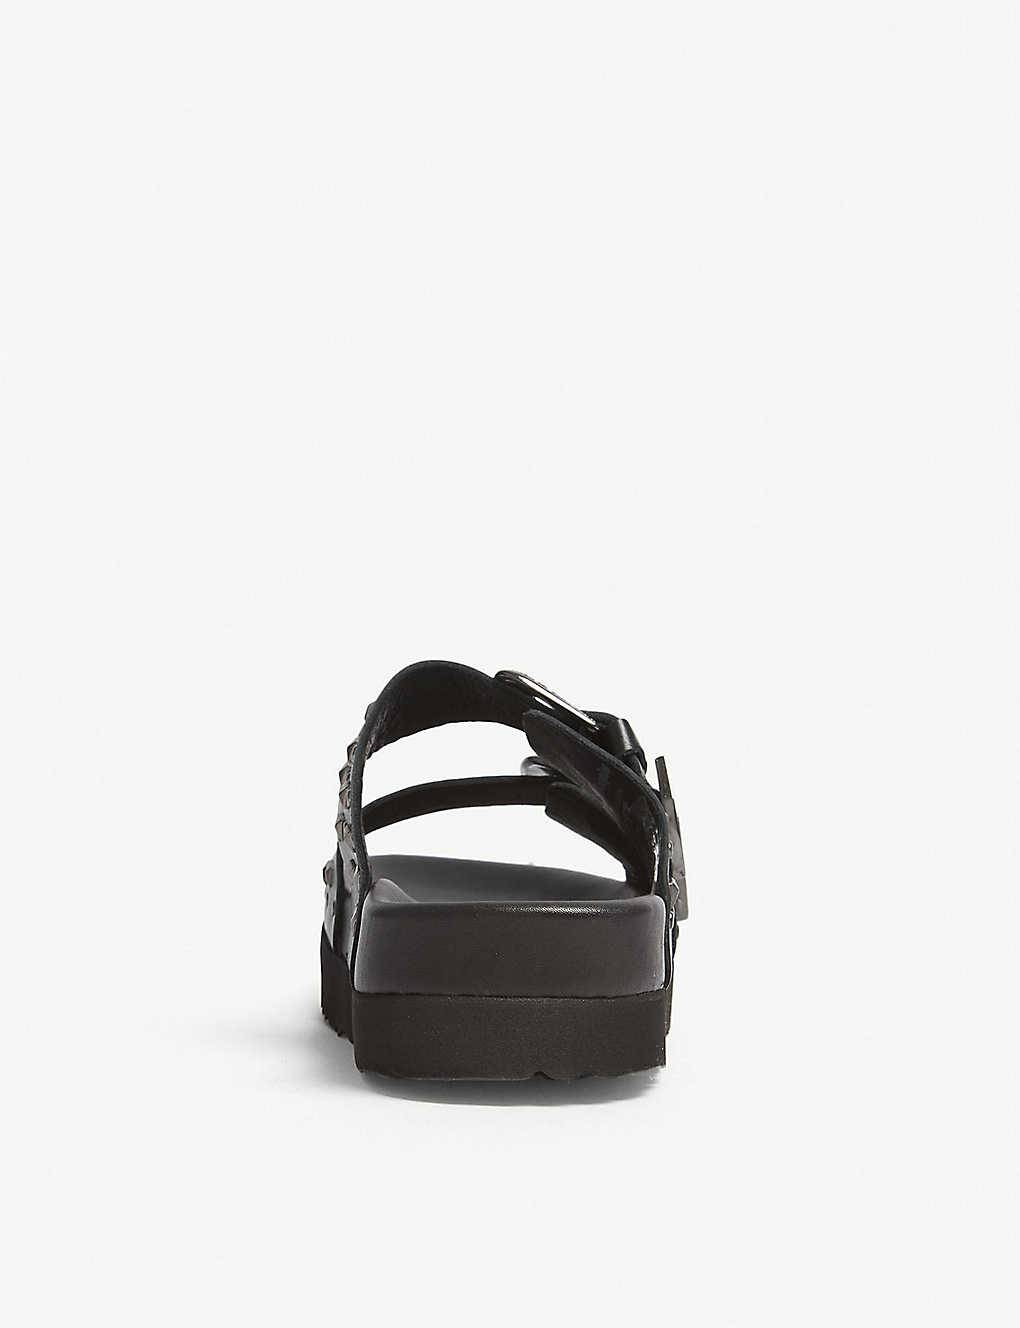 937beee92b7 THE KOOPLES - Studded leather sandals | Selfridges.com